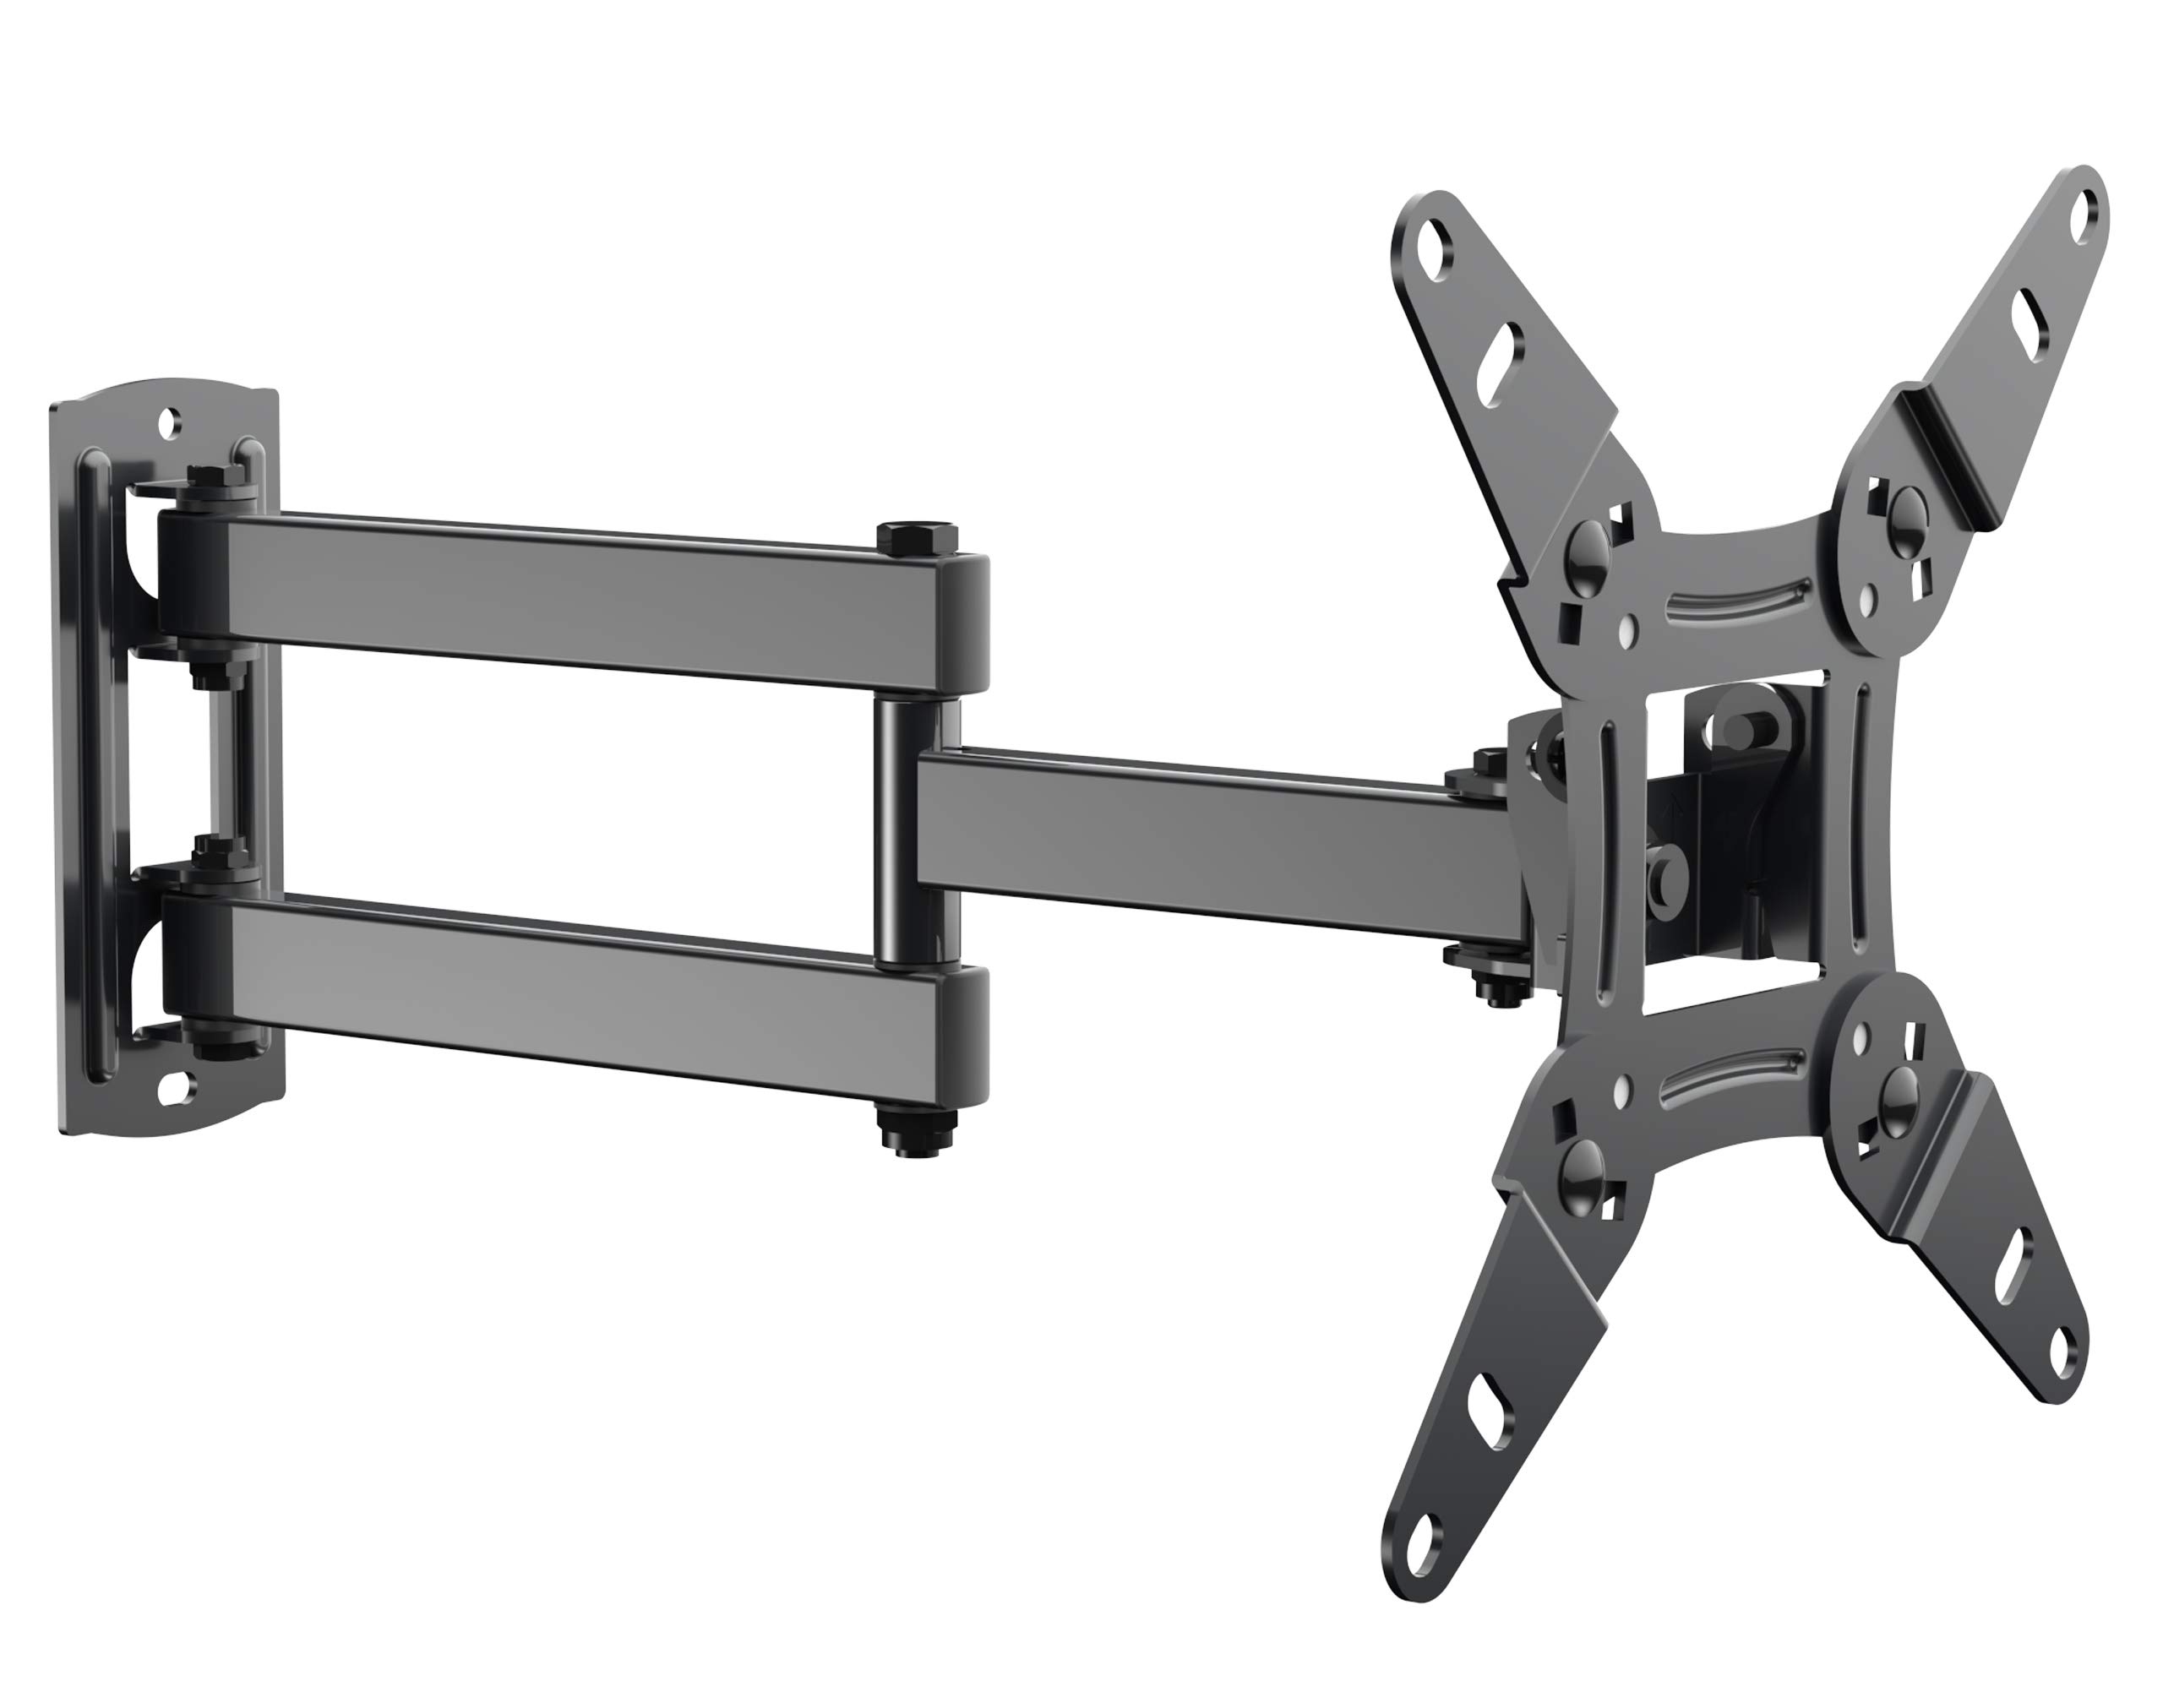 Full Motion TV Wall Mount Bracket fits to Most 13-40 inch TVs & Monitors, Wall Mount TV Bracket with Arm Articulating Tilt Swivel & Extends 14.5'' - TV Mount fits LED, LCD, OLED Flat Screen TVs